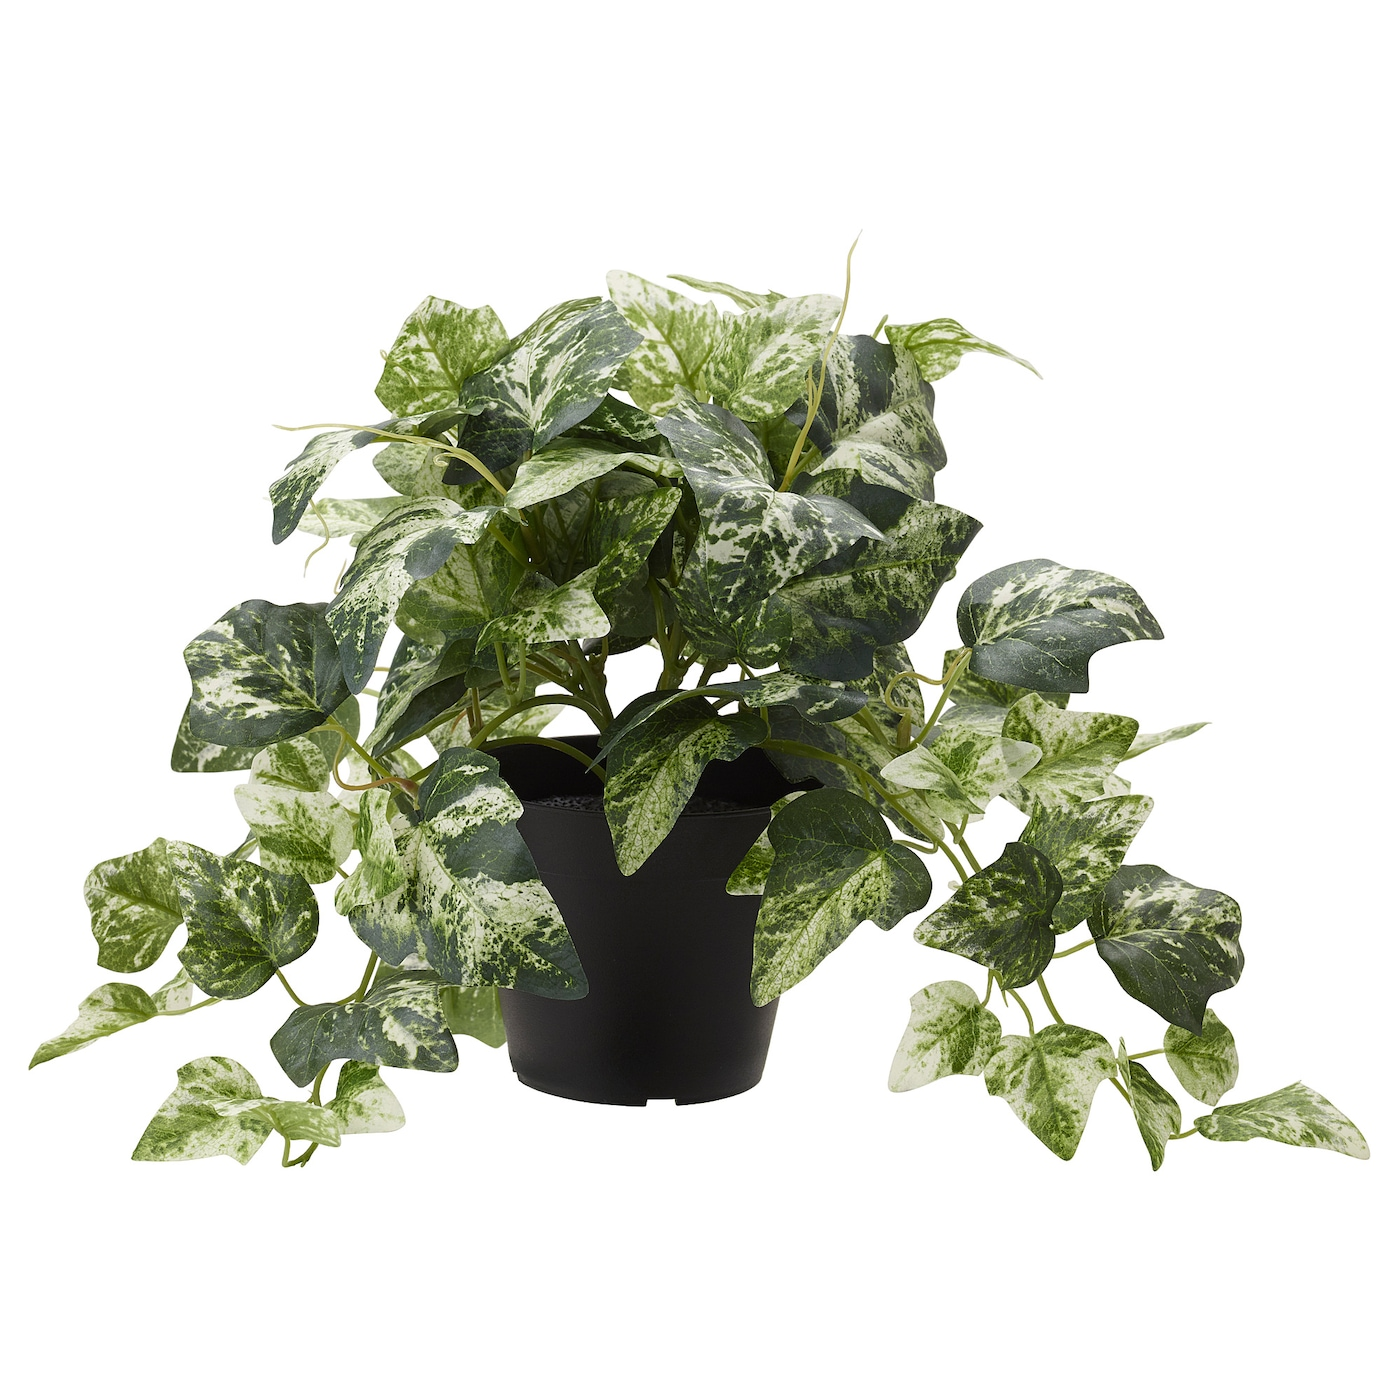 Fejka plante artificielle en pot lierre 12 cm ikea for Plante verte artificielle ikea